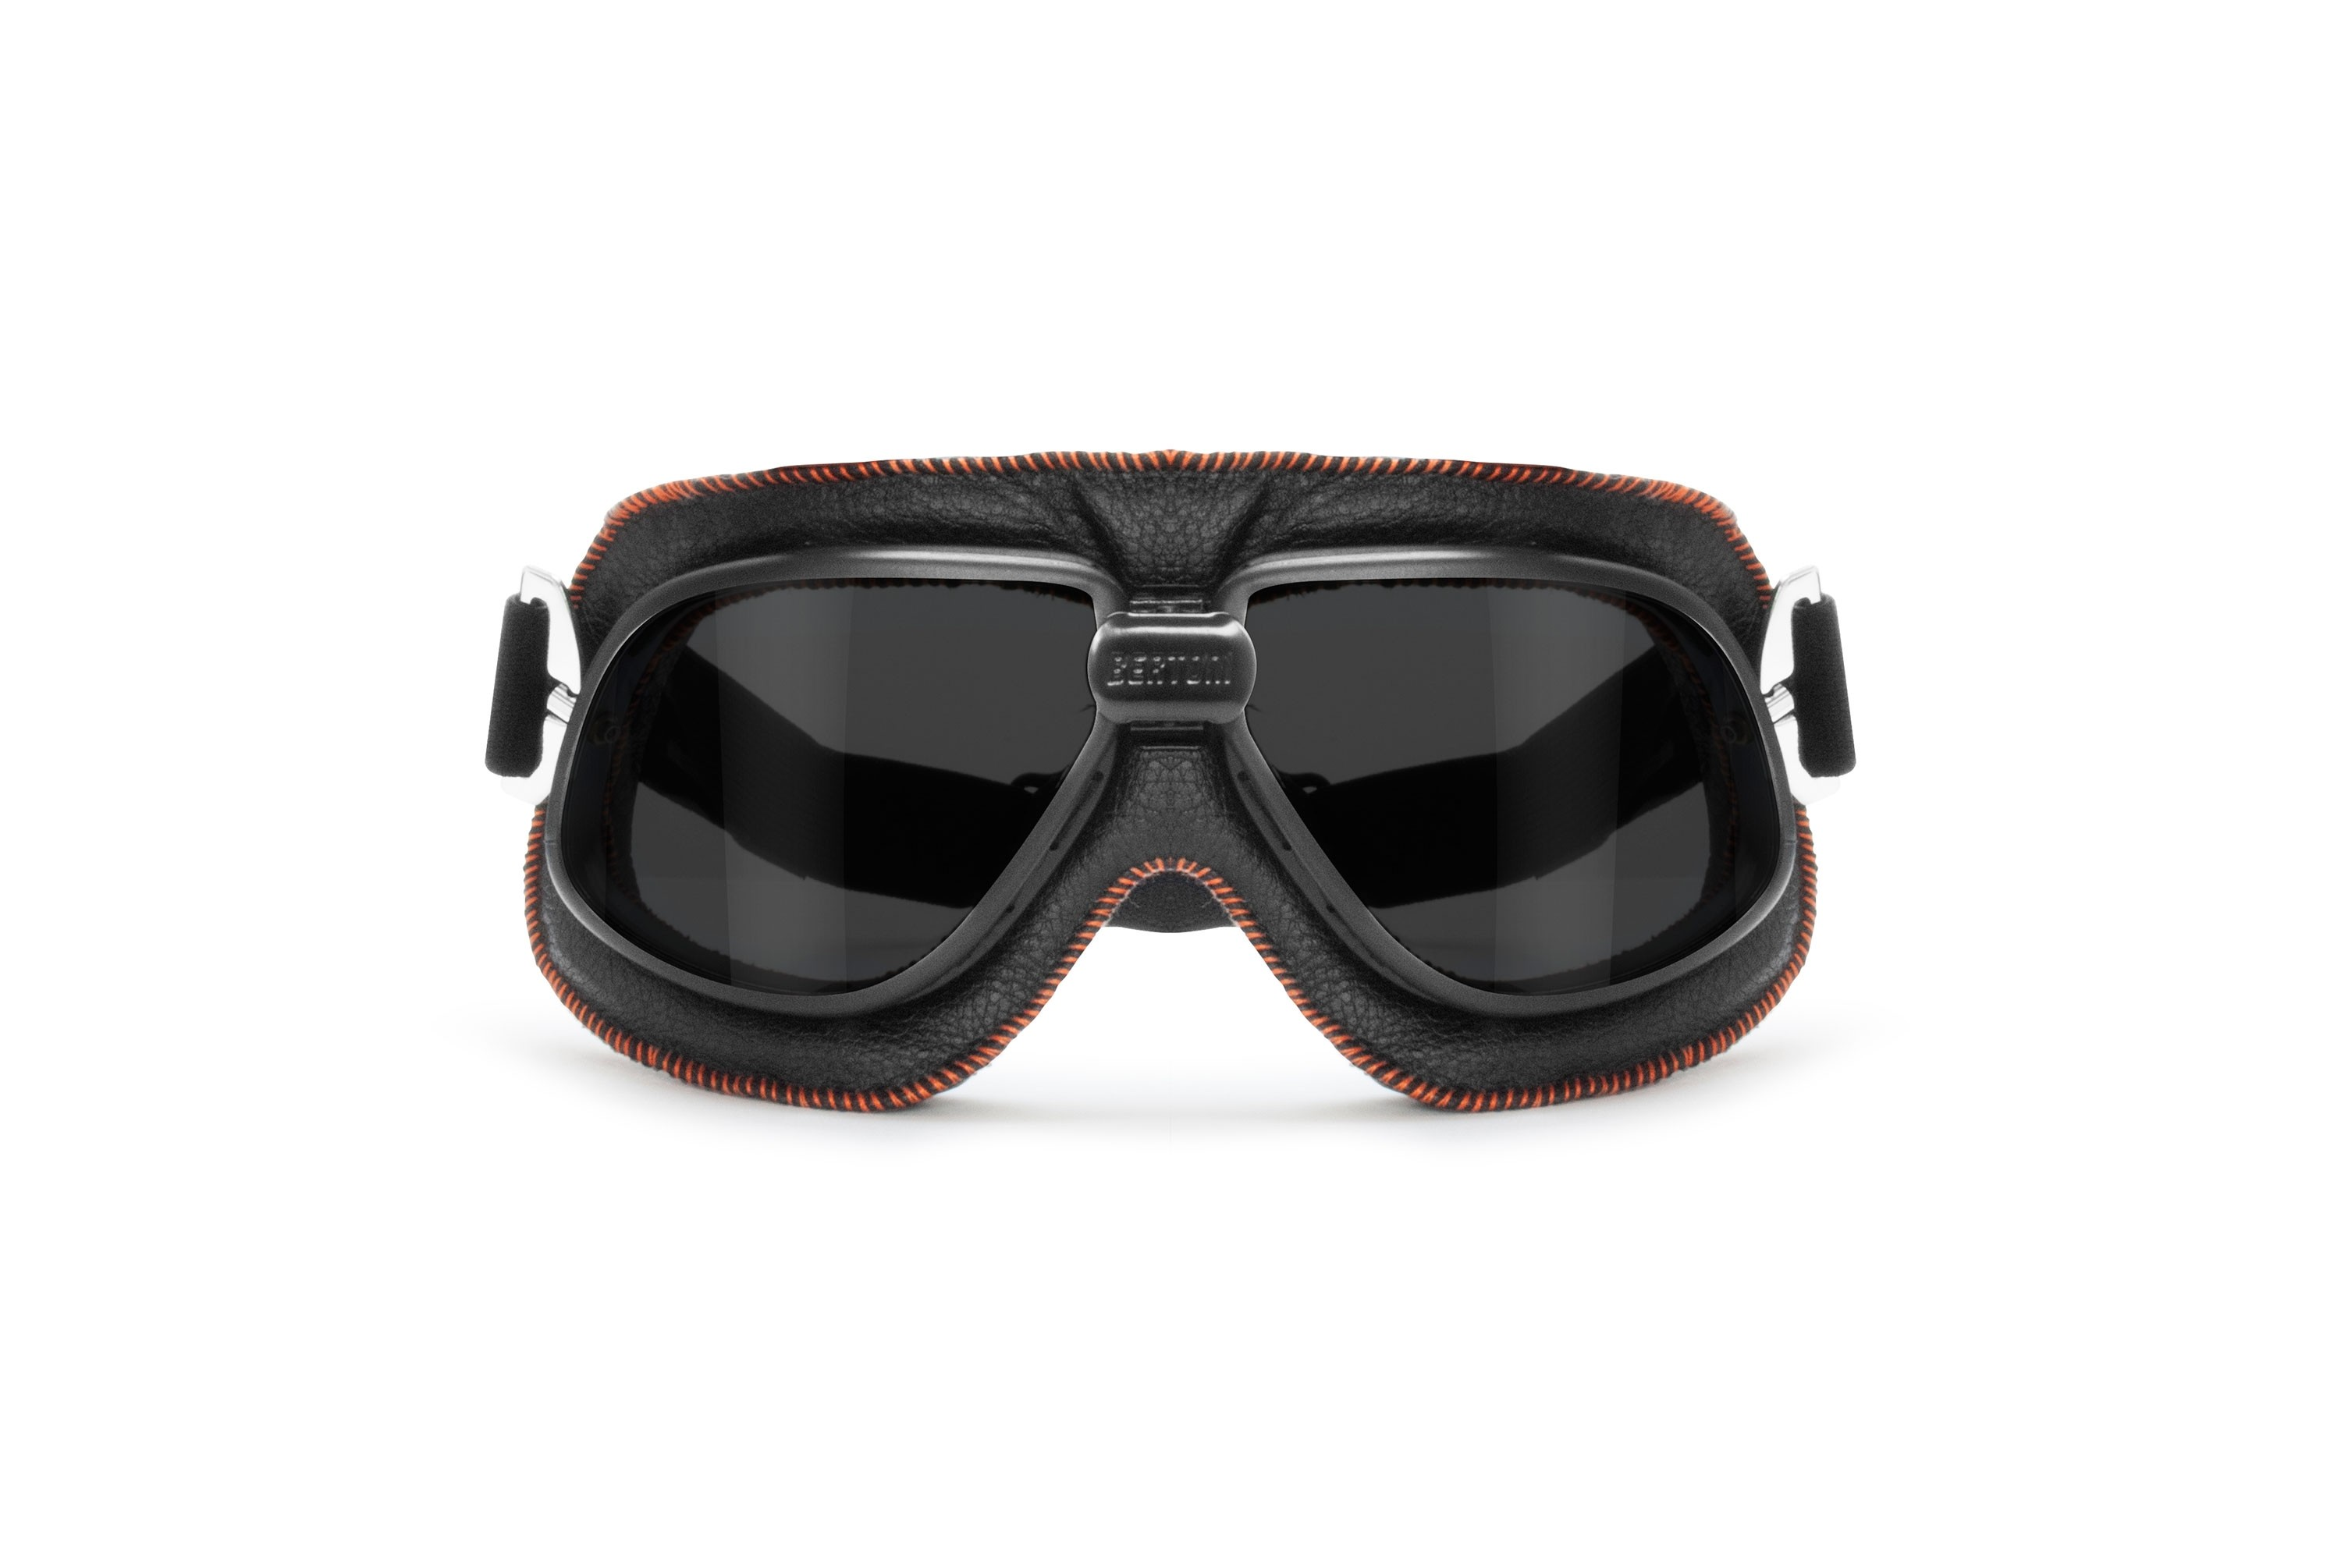 Vintage Motorcycle Goggles in Black Leather and Orange Stitching with Smoke Lenses By Bertoni Italy - AF196A